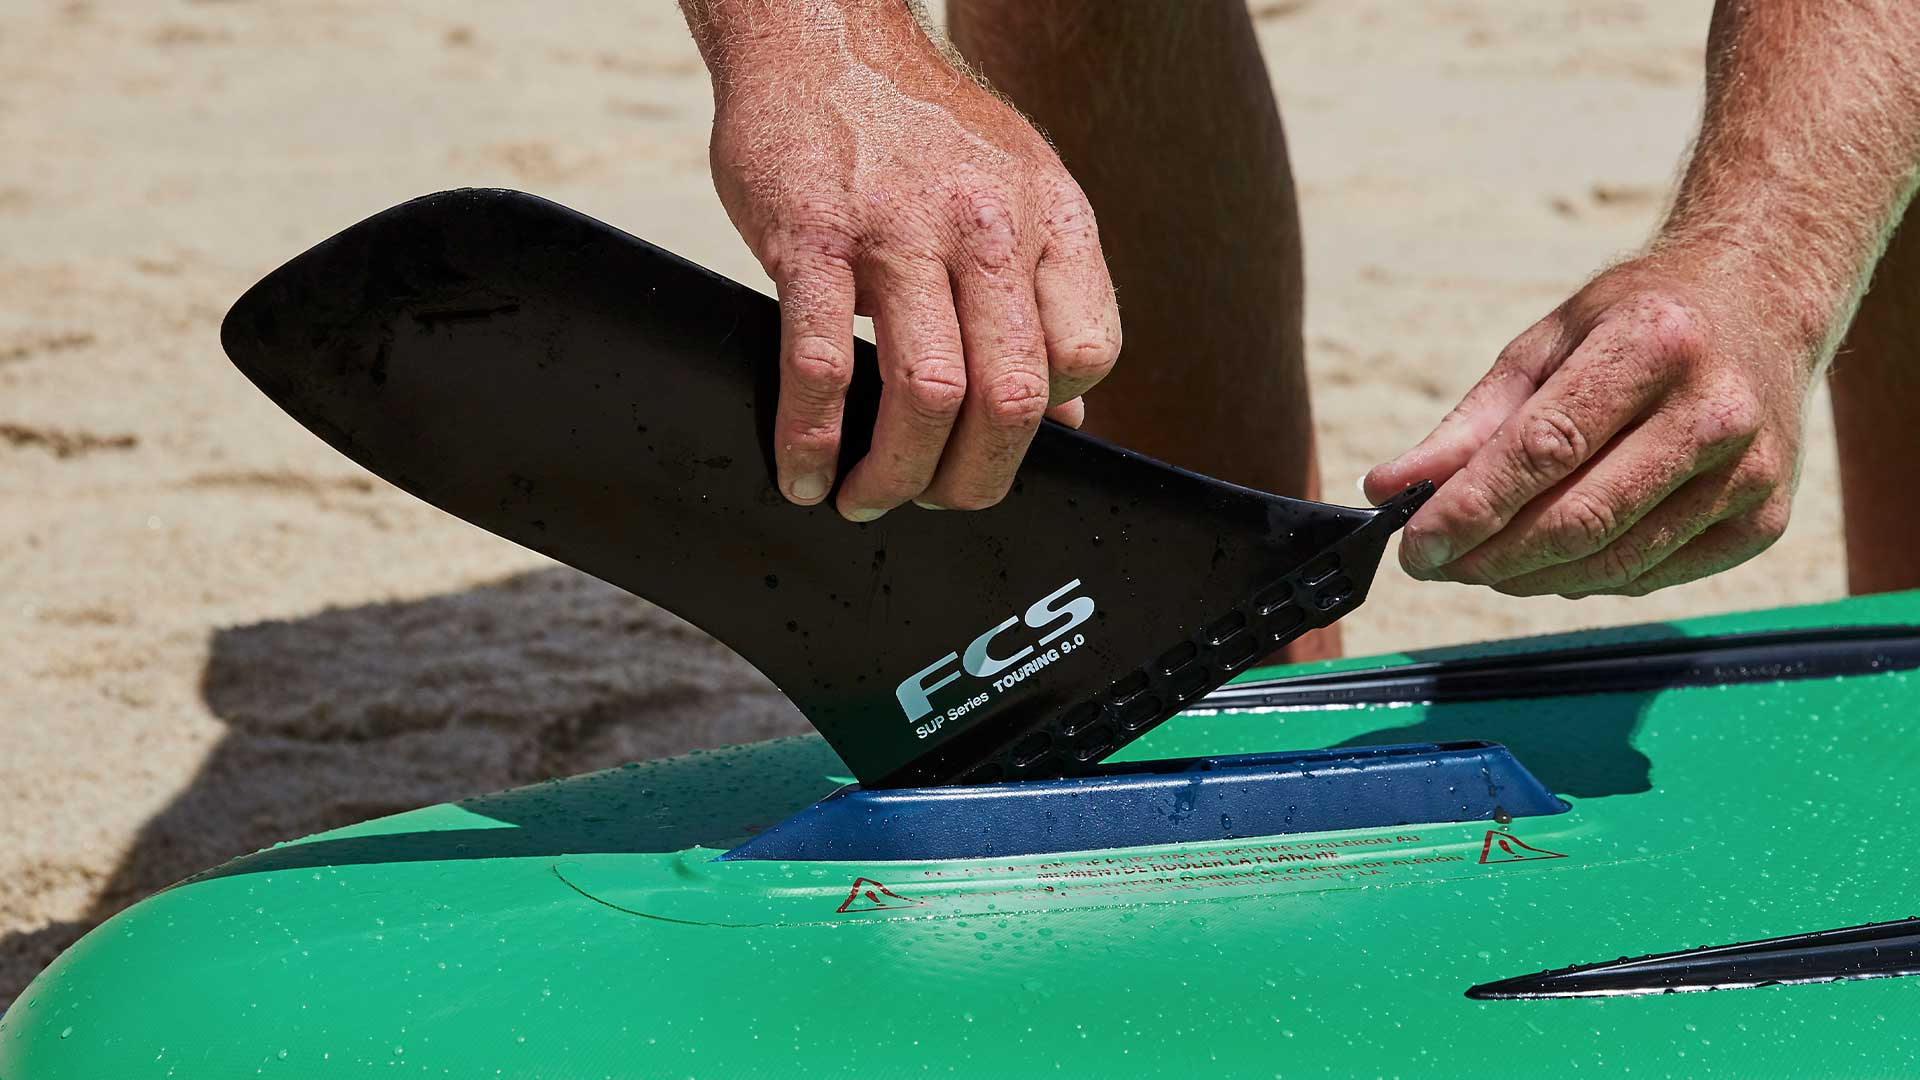 redpaddleco-126-voyager-inflatable-paddle-board-desktop-gallery-fins